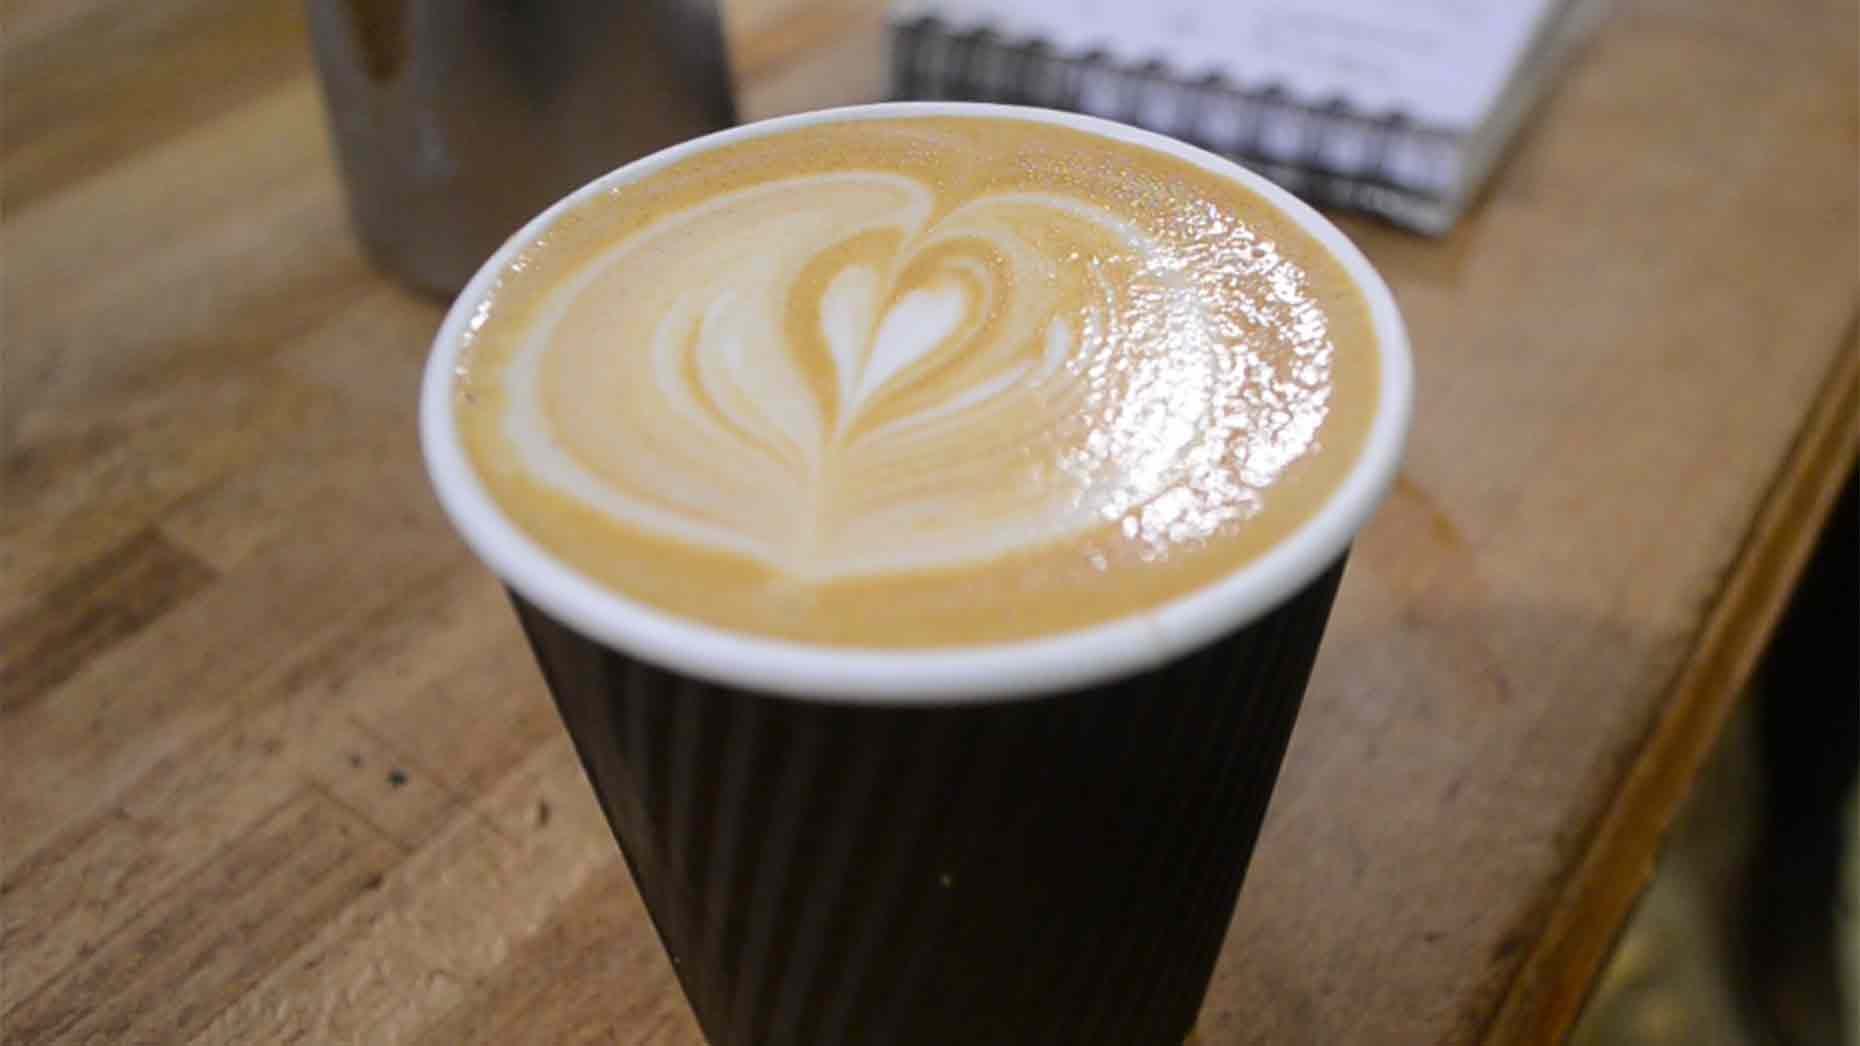 United Kingdom  government urged to introduce 25p latte levy on disposable coffee cups